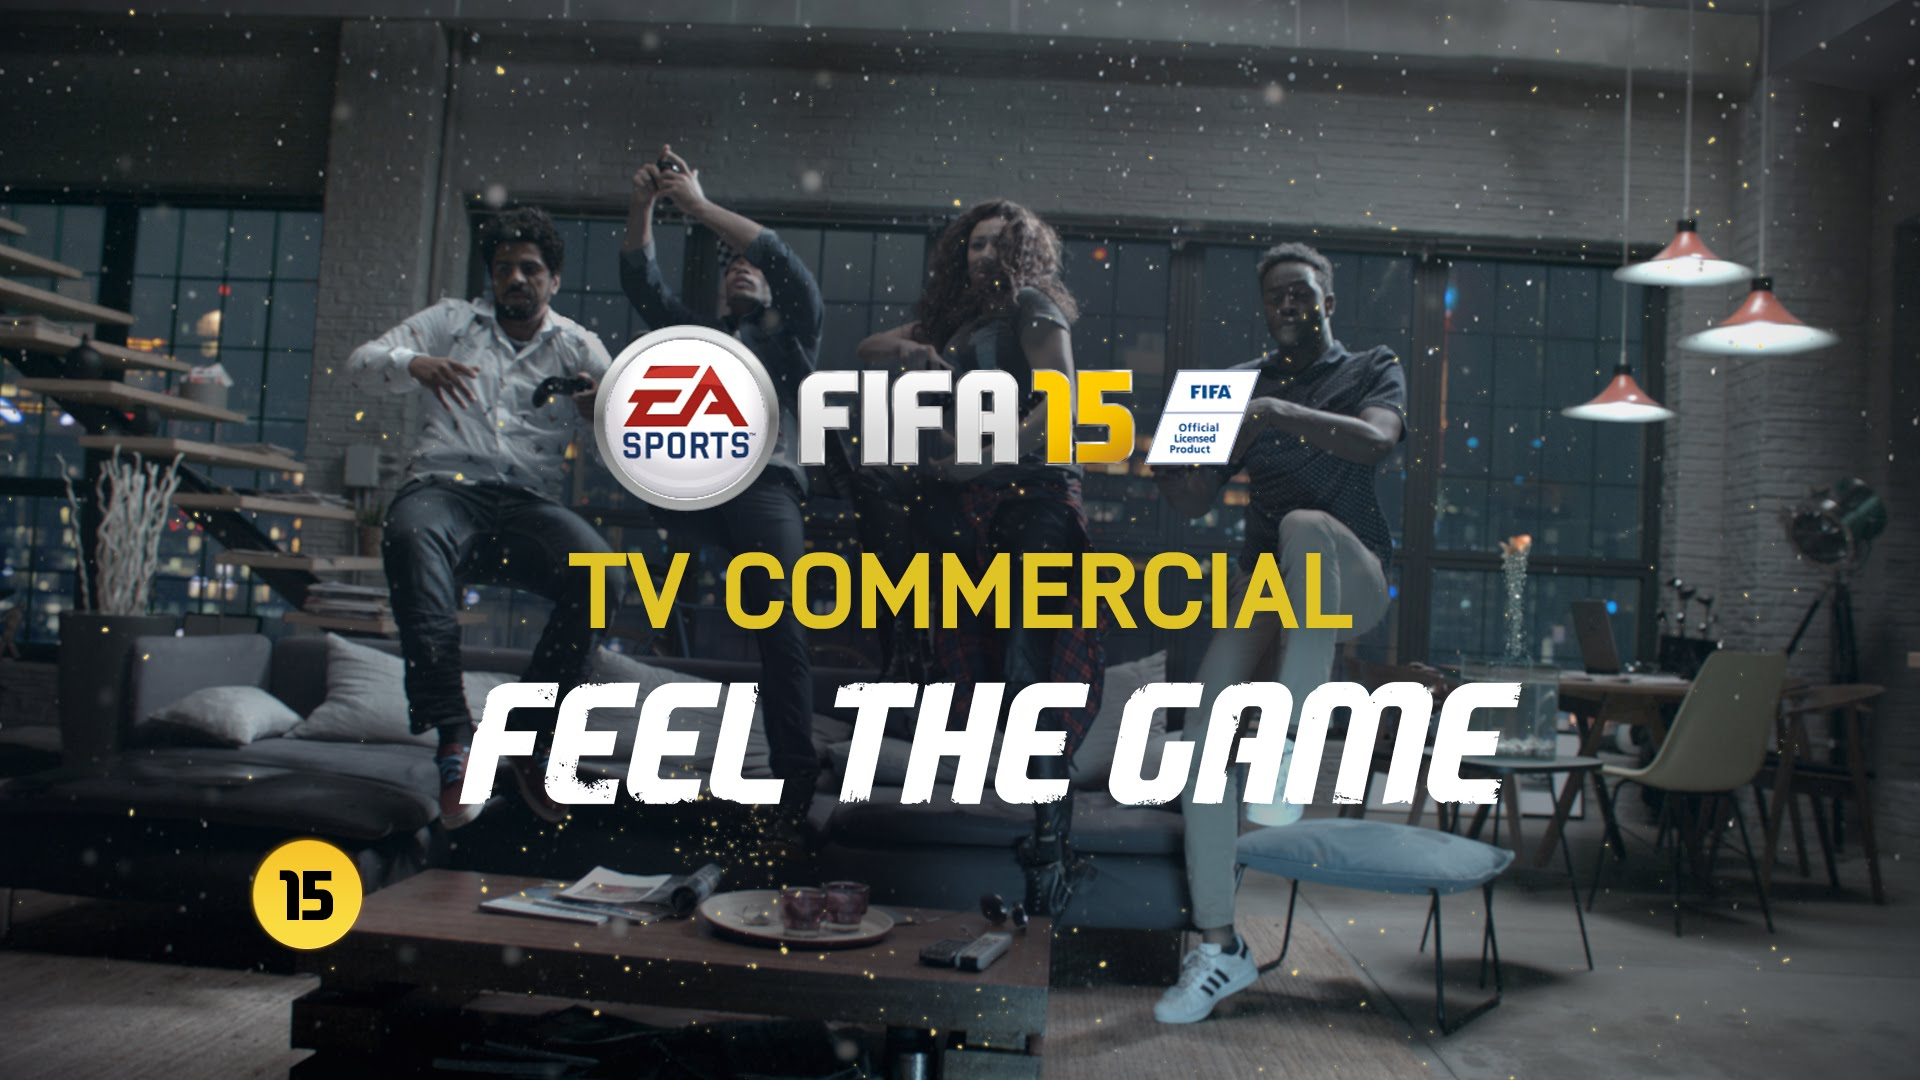 FIFA 15 – Feel The Game